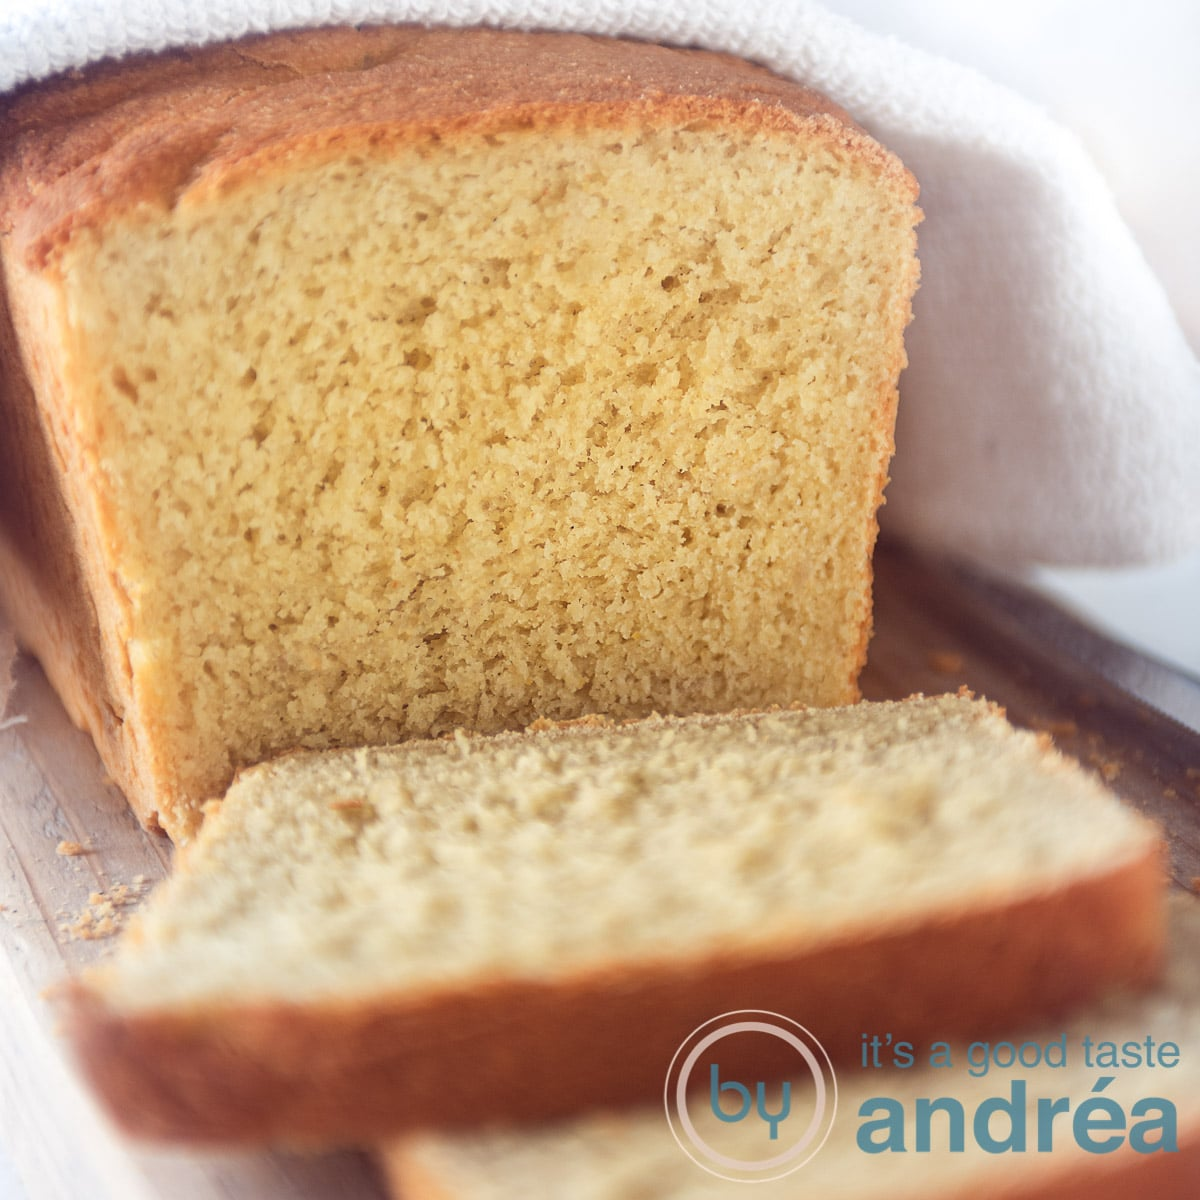 a square photo with cornbread. A white towel on top. Some slices cut off